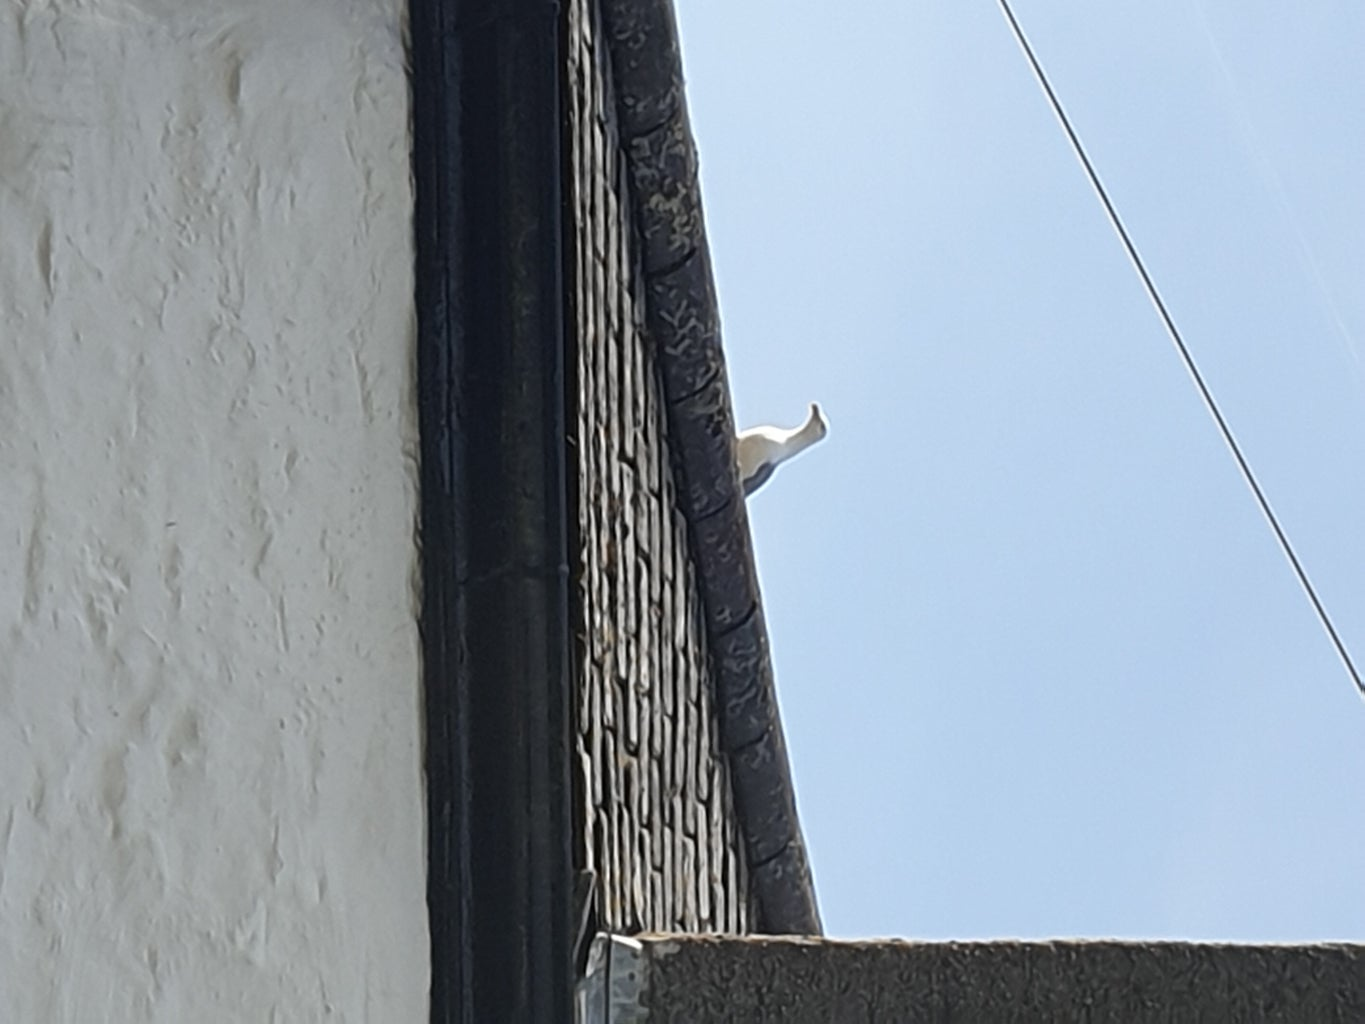 How to Use Seagull Repellents in Your Garden